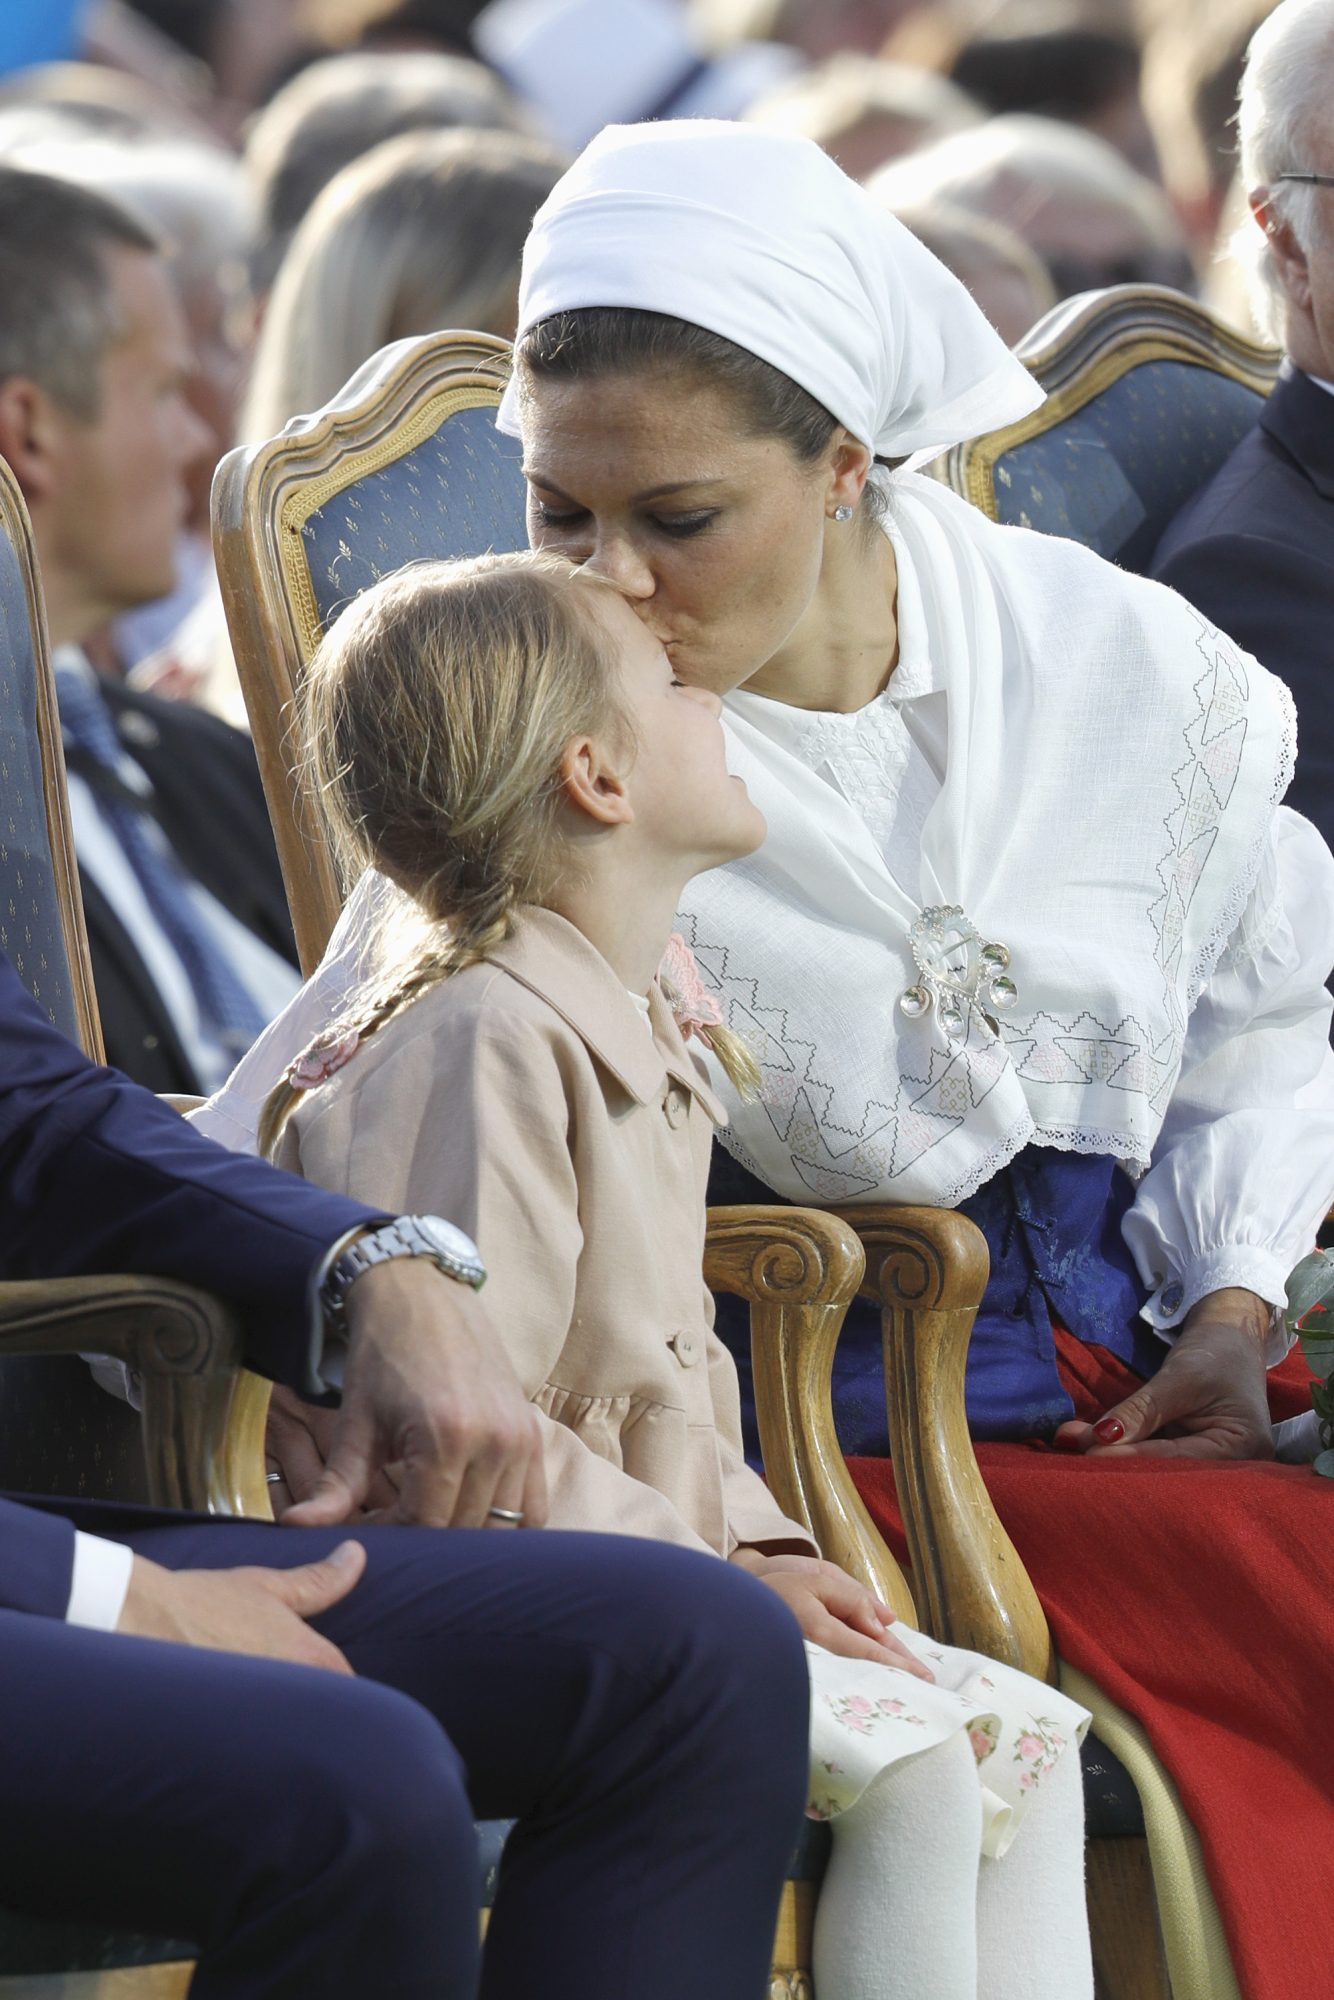 The Crown Princess Victoria of Sweden's 40th birthday Celebrations in Borgholm